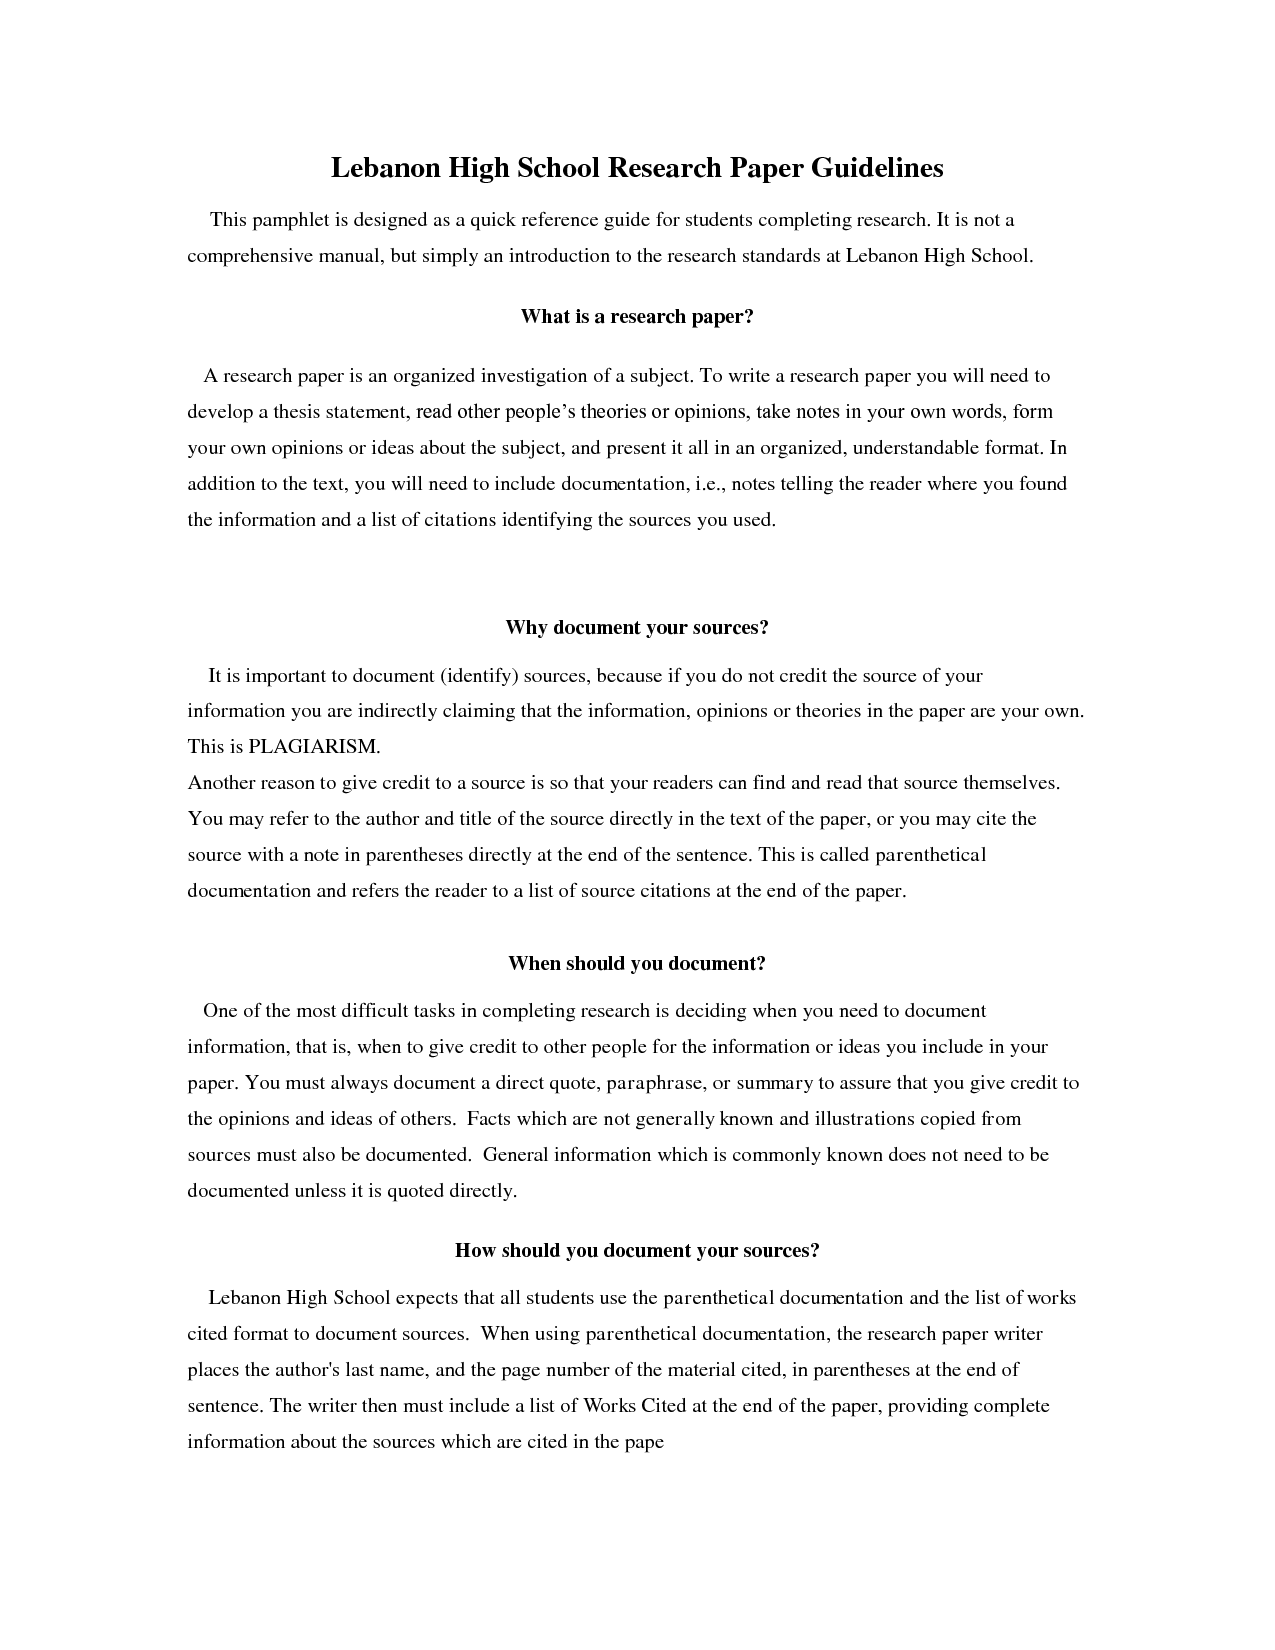 024 Research Paper Good Singular Topic Topics History Reddit Argumentative About Sports Full